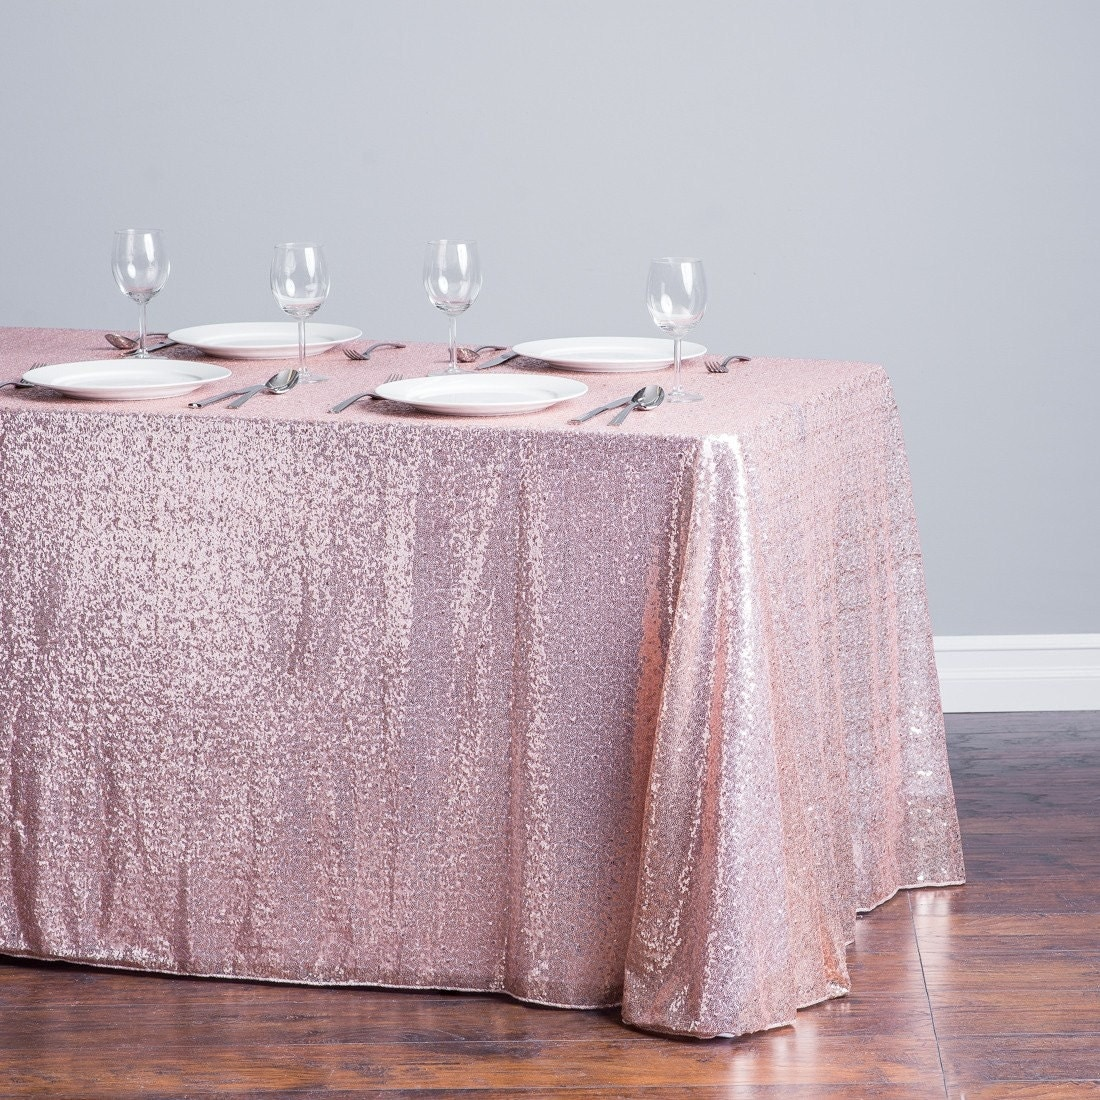 Blush Sequin Tablecloth, Baby Shower Table Cloth, Sequin Tablecloth, Gold  Sequence, Gold Table Overlay, Table Runner